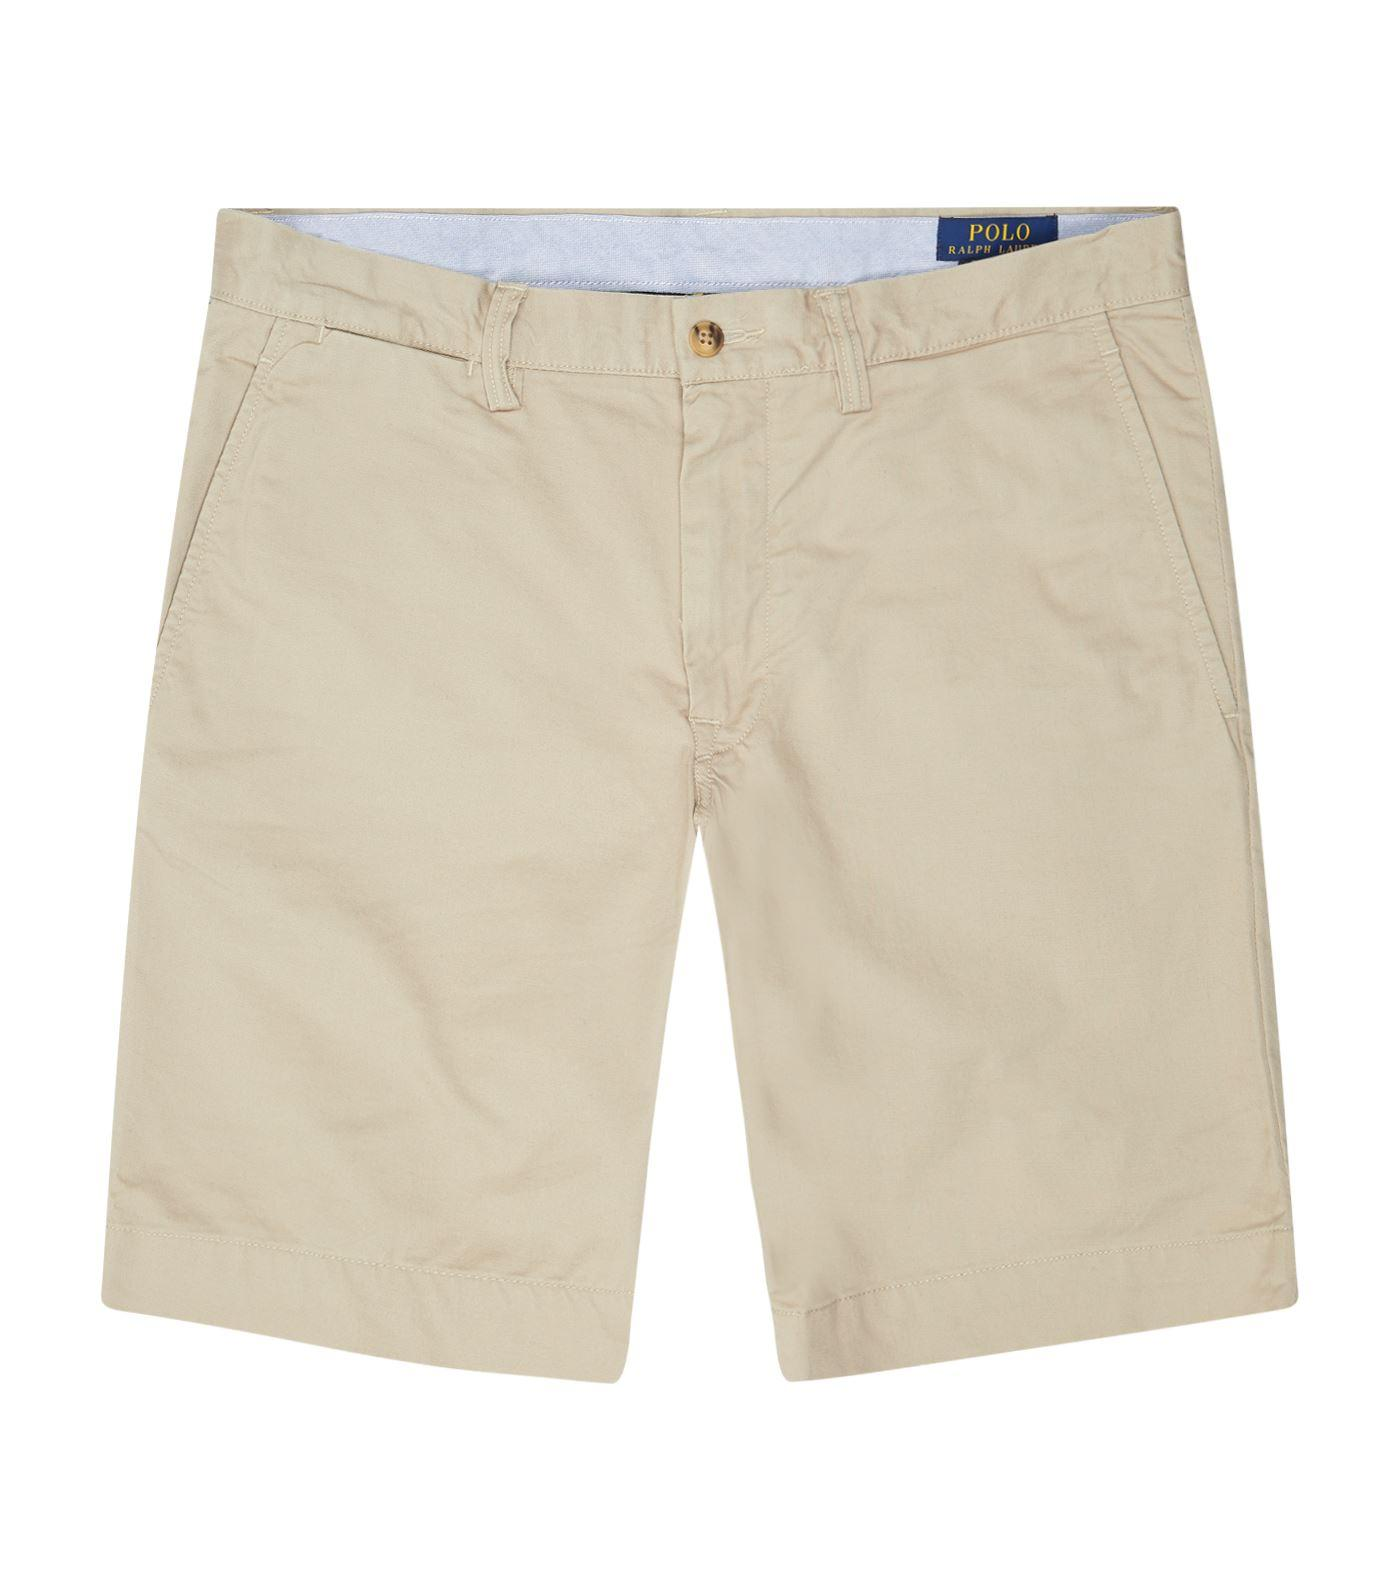 973df2c864 Lyst - Polo Ralph Lauren Chino Shorts in Natural for Men